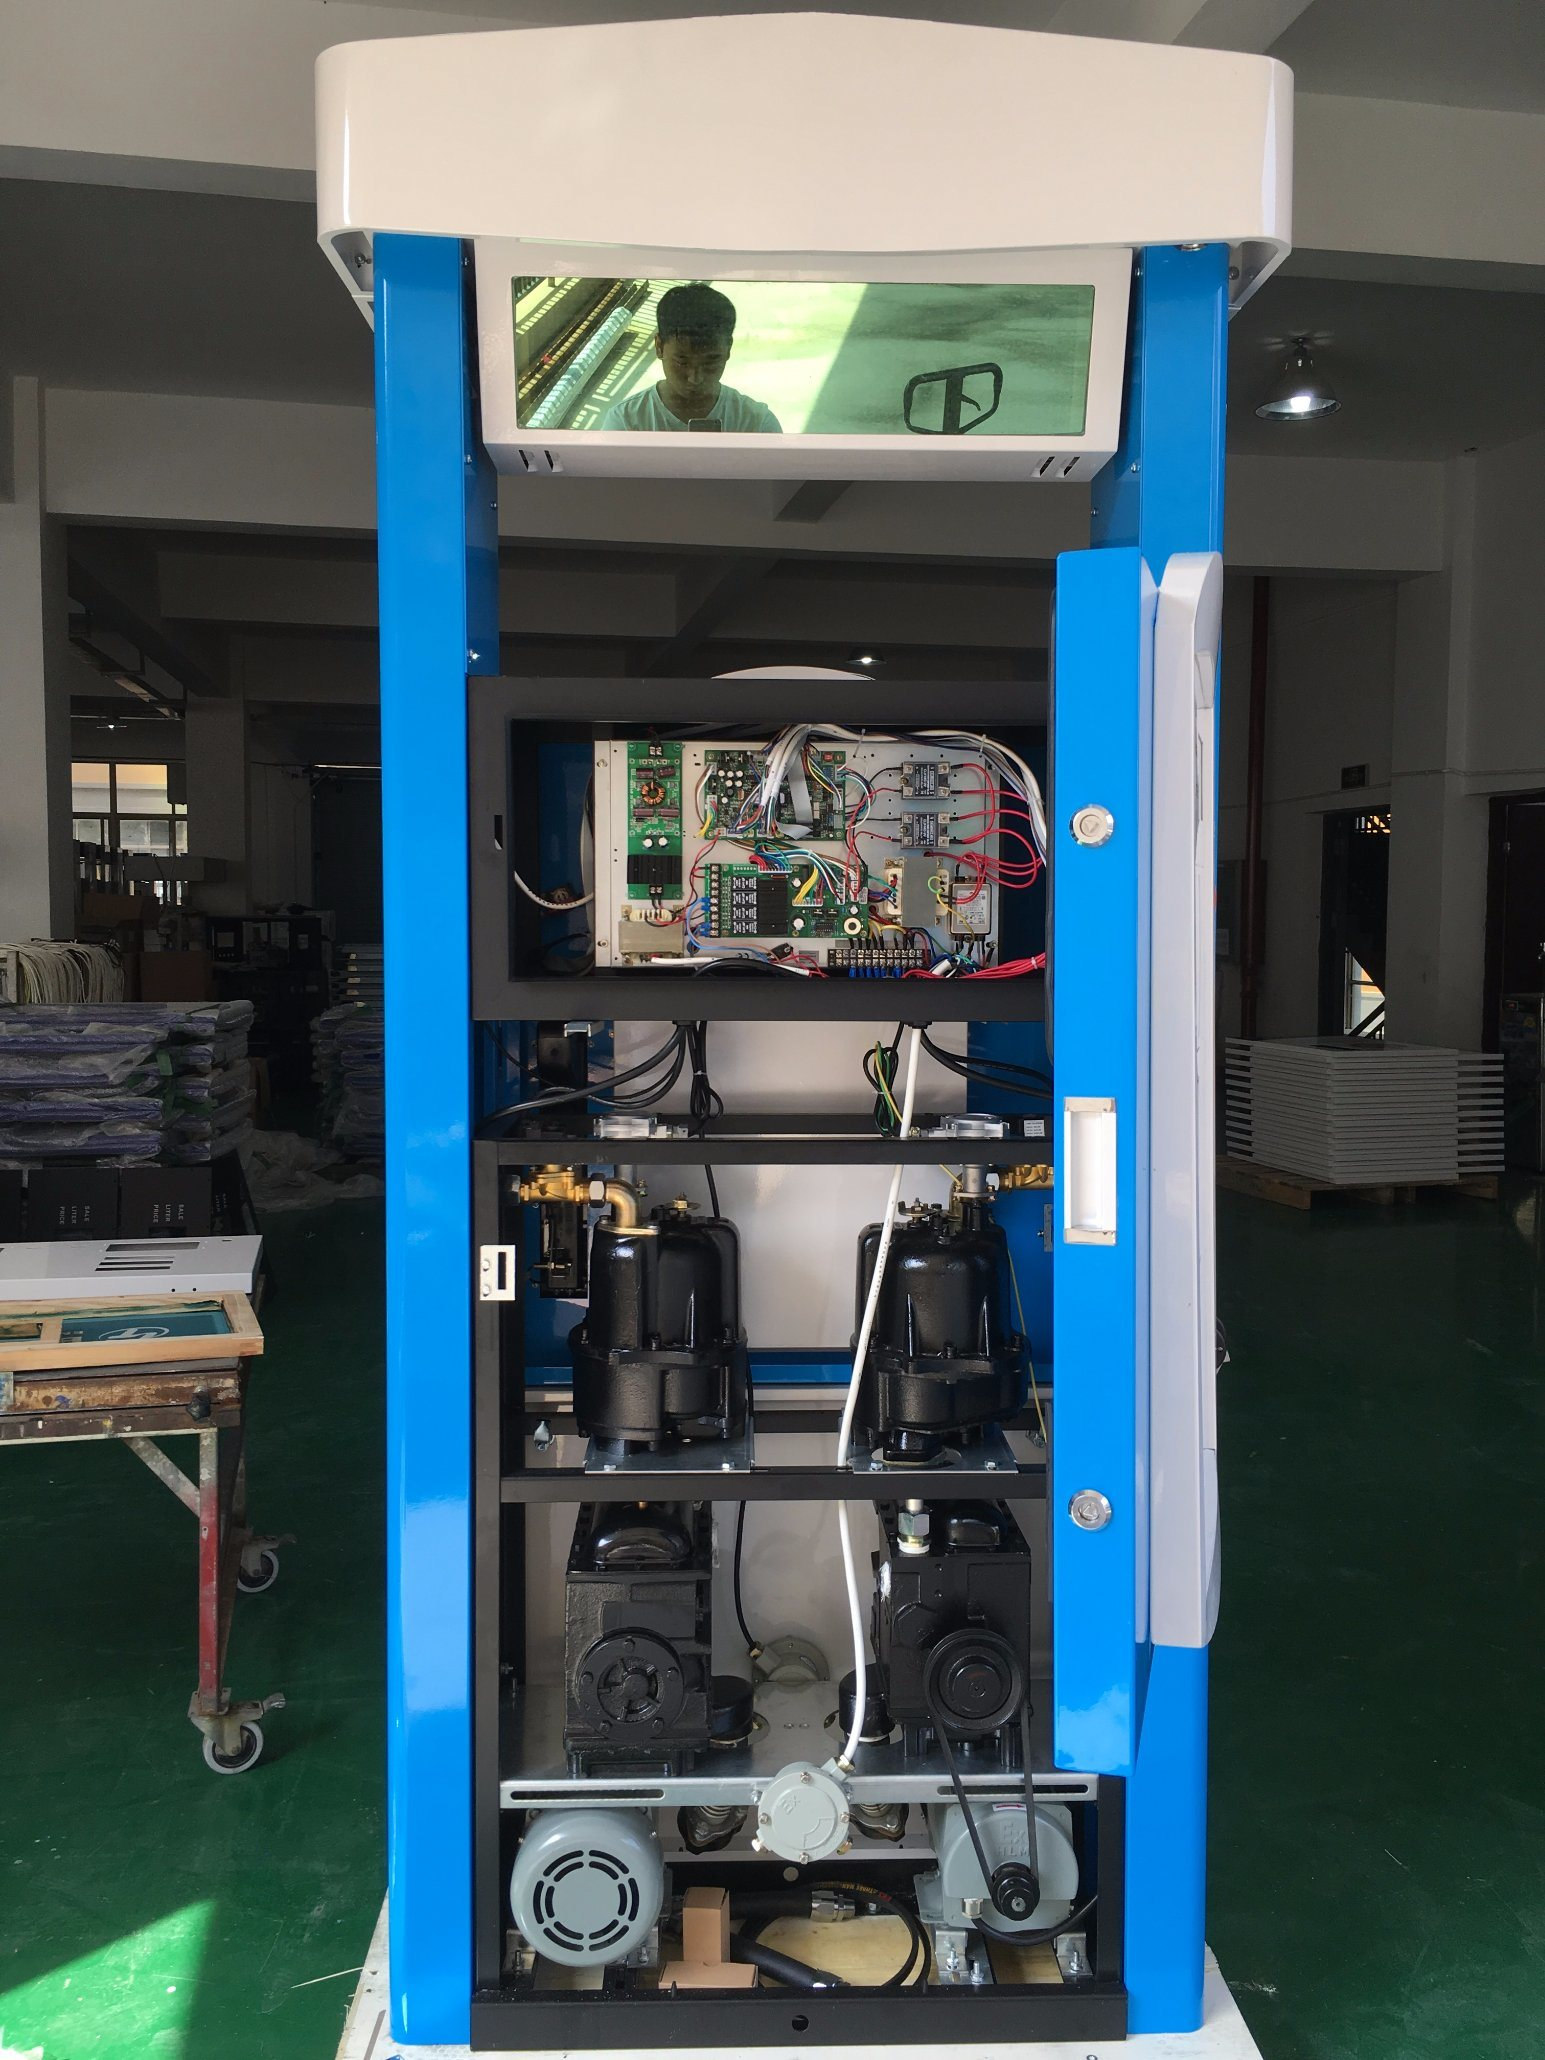 Gilbarco Type Fuel Dispenser 2 Product2 Nozzle4 Displays For Gas Pump Wiring Diagram Detailed Images